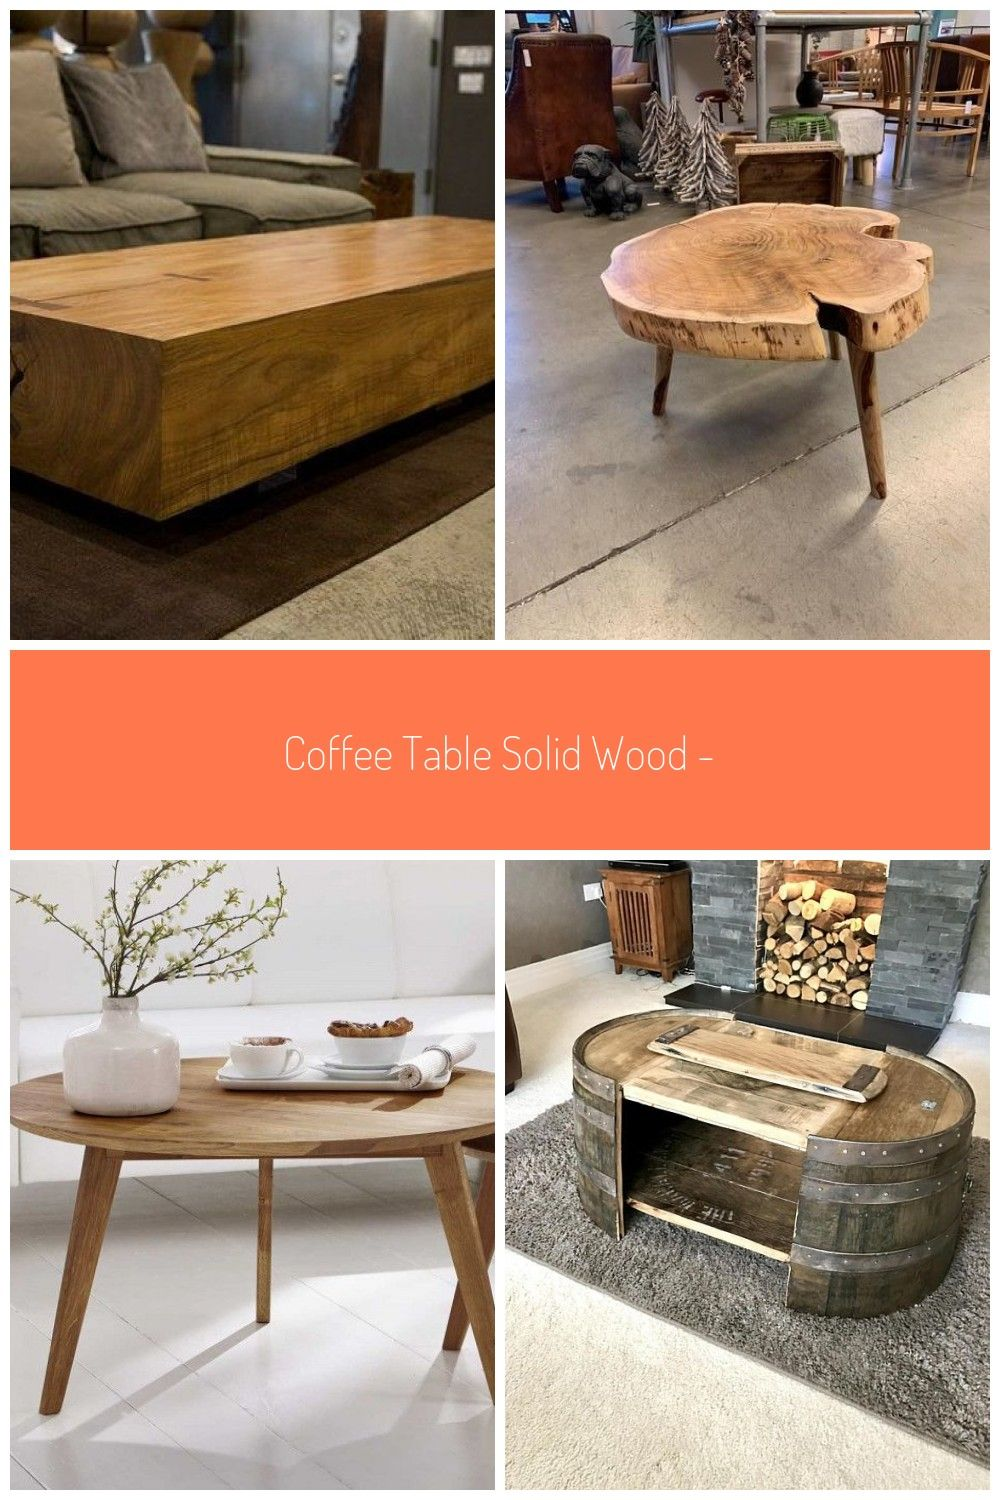 Coffee table Solid wood - models of wooden coffee tables  - Wohnzimmer Tisch - holz